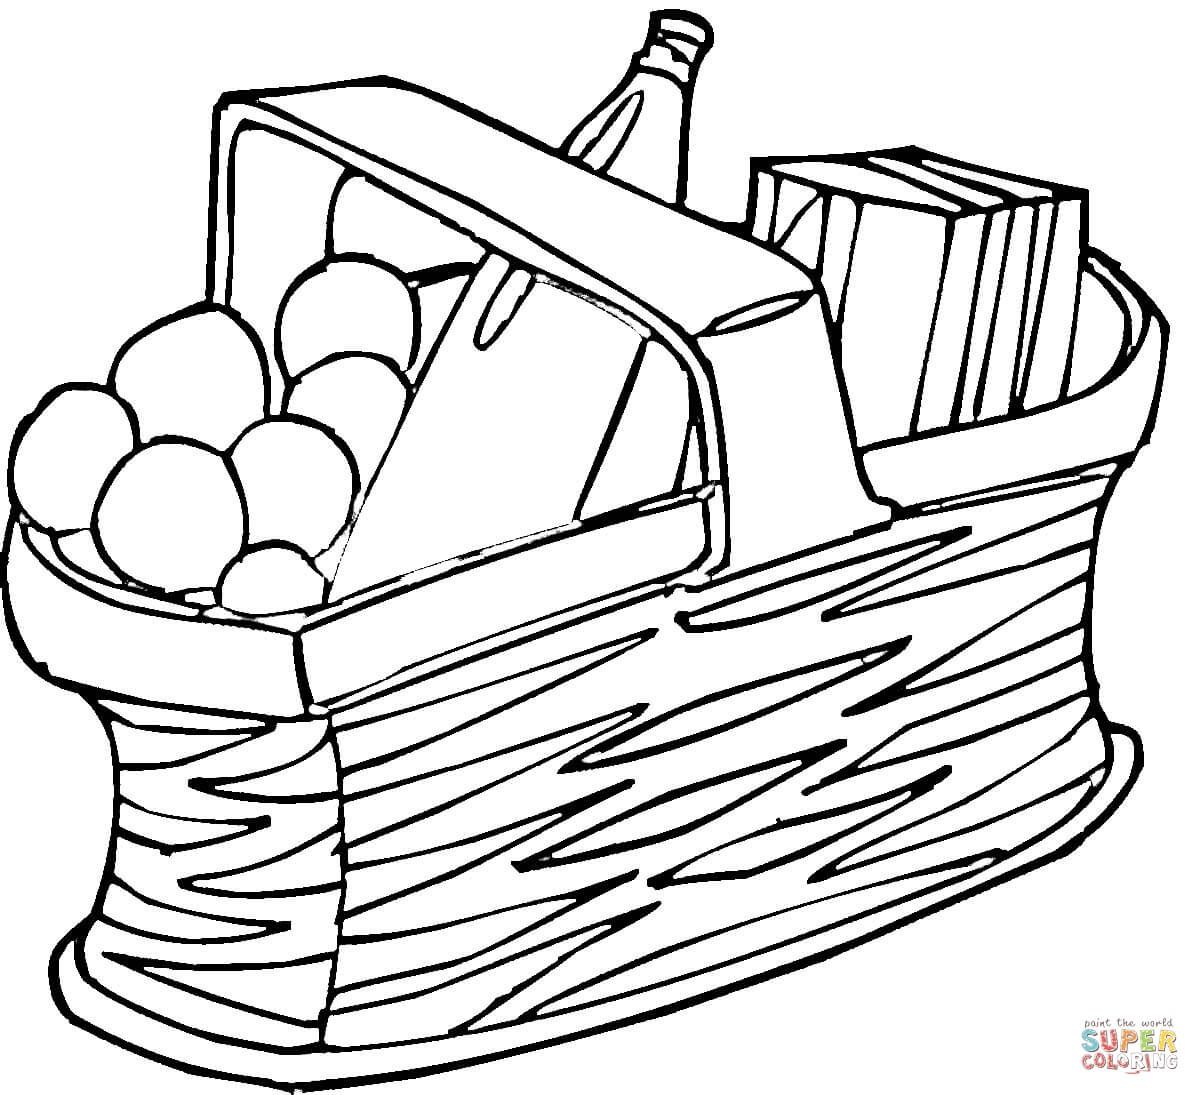 Coloring sheet kitchen - In Mcdonalds Coloring Page Free Printable Coloring Pages